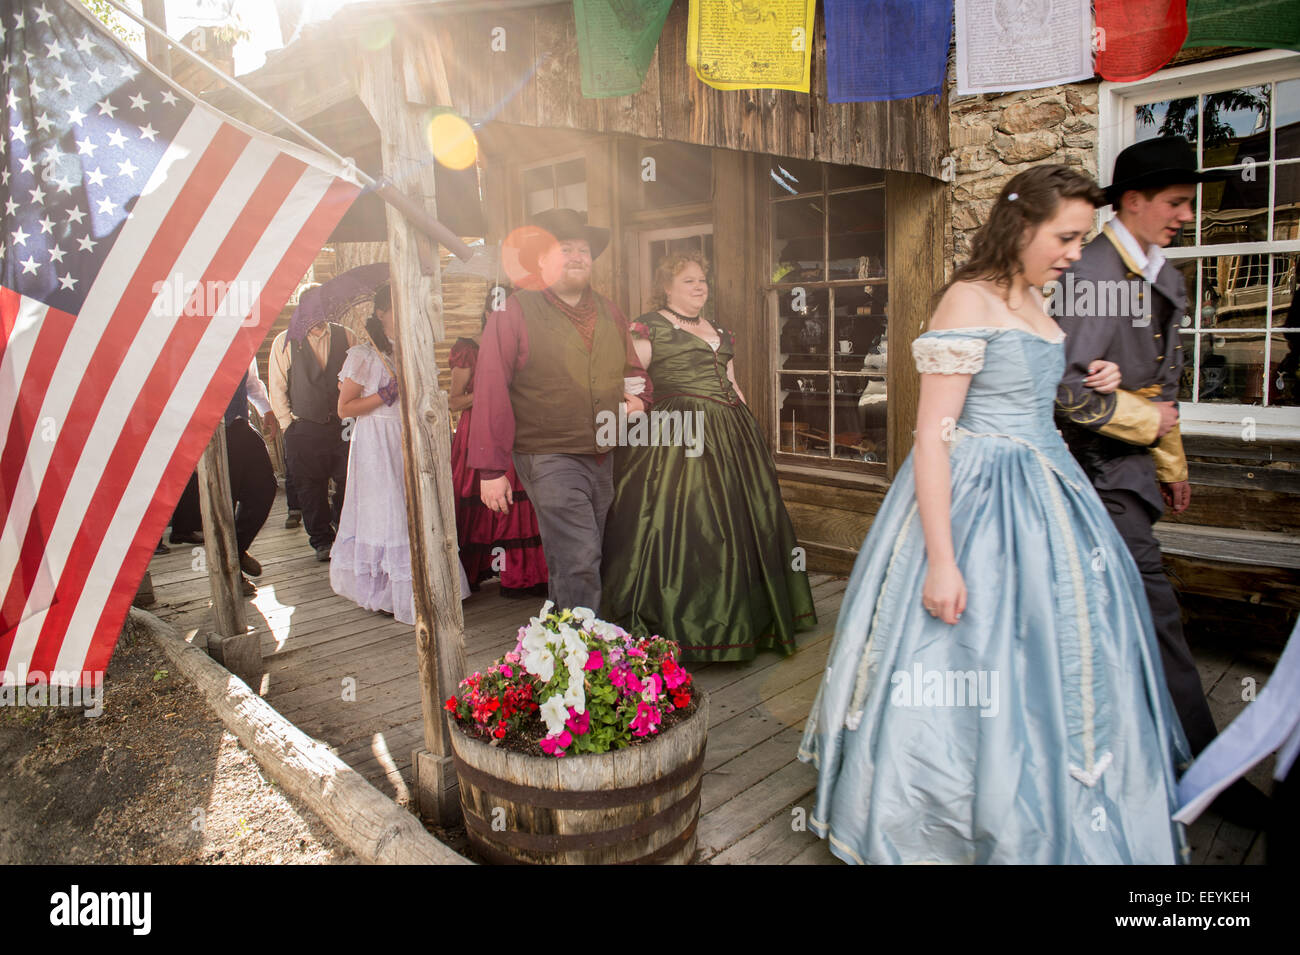 Tourists and Montanans gather for the 1864 Grand Victorian Ball for Montana Territory on June 21, 2014 in Virginia - Stock Image